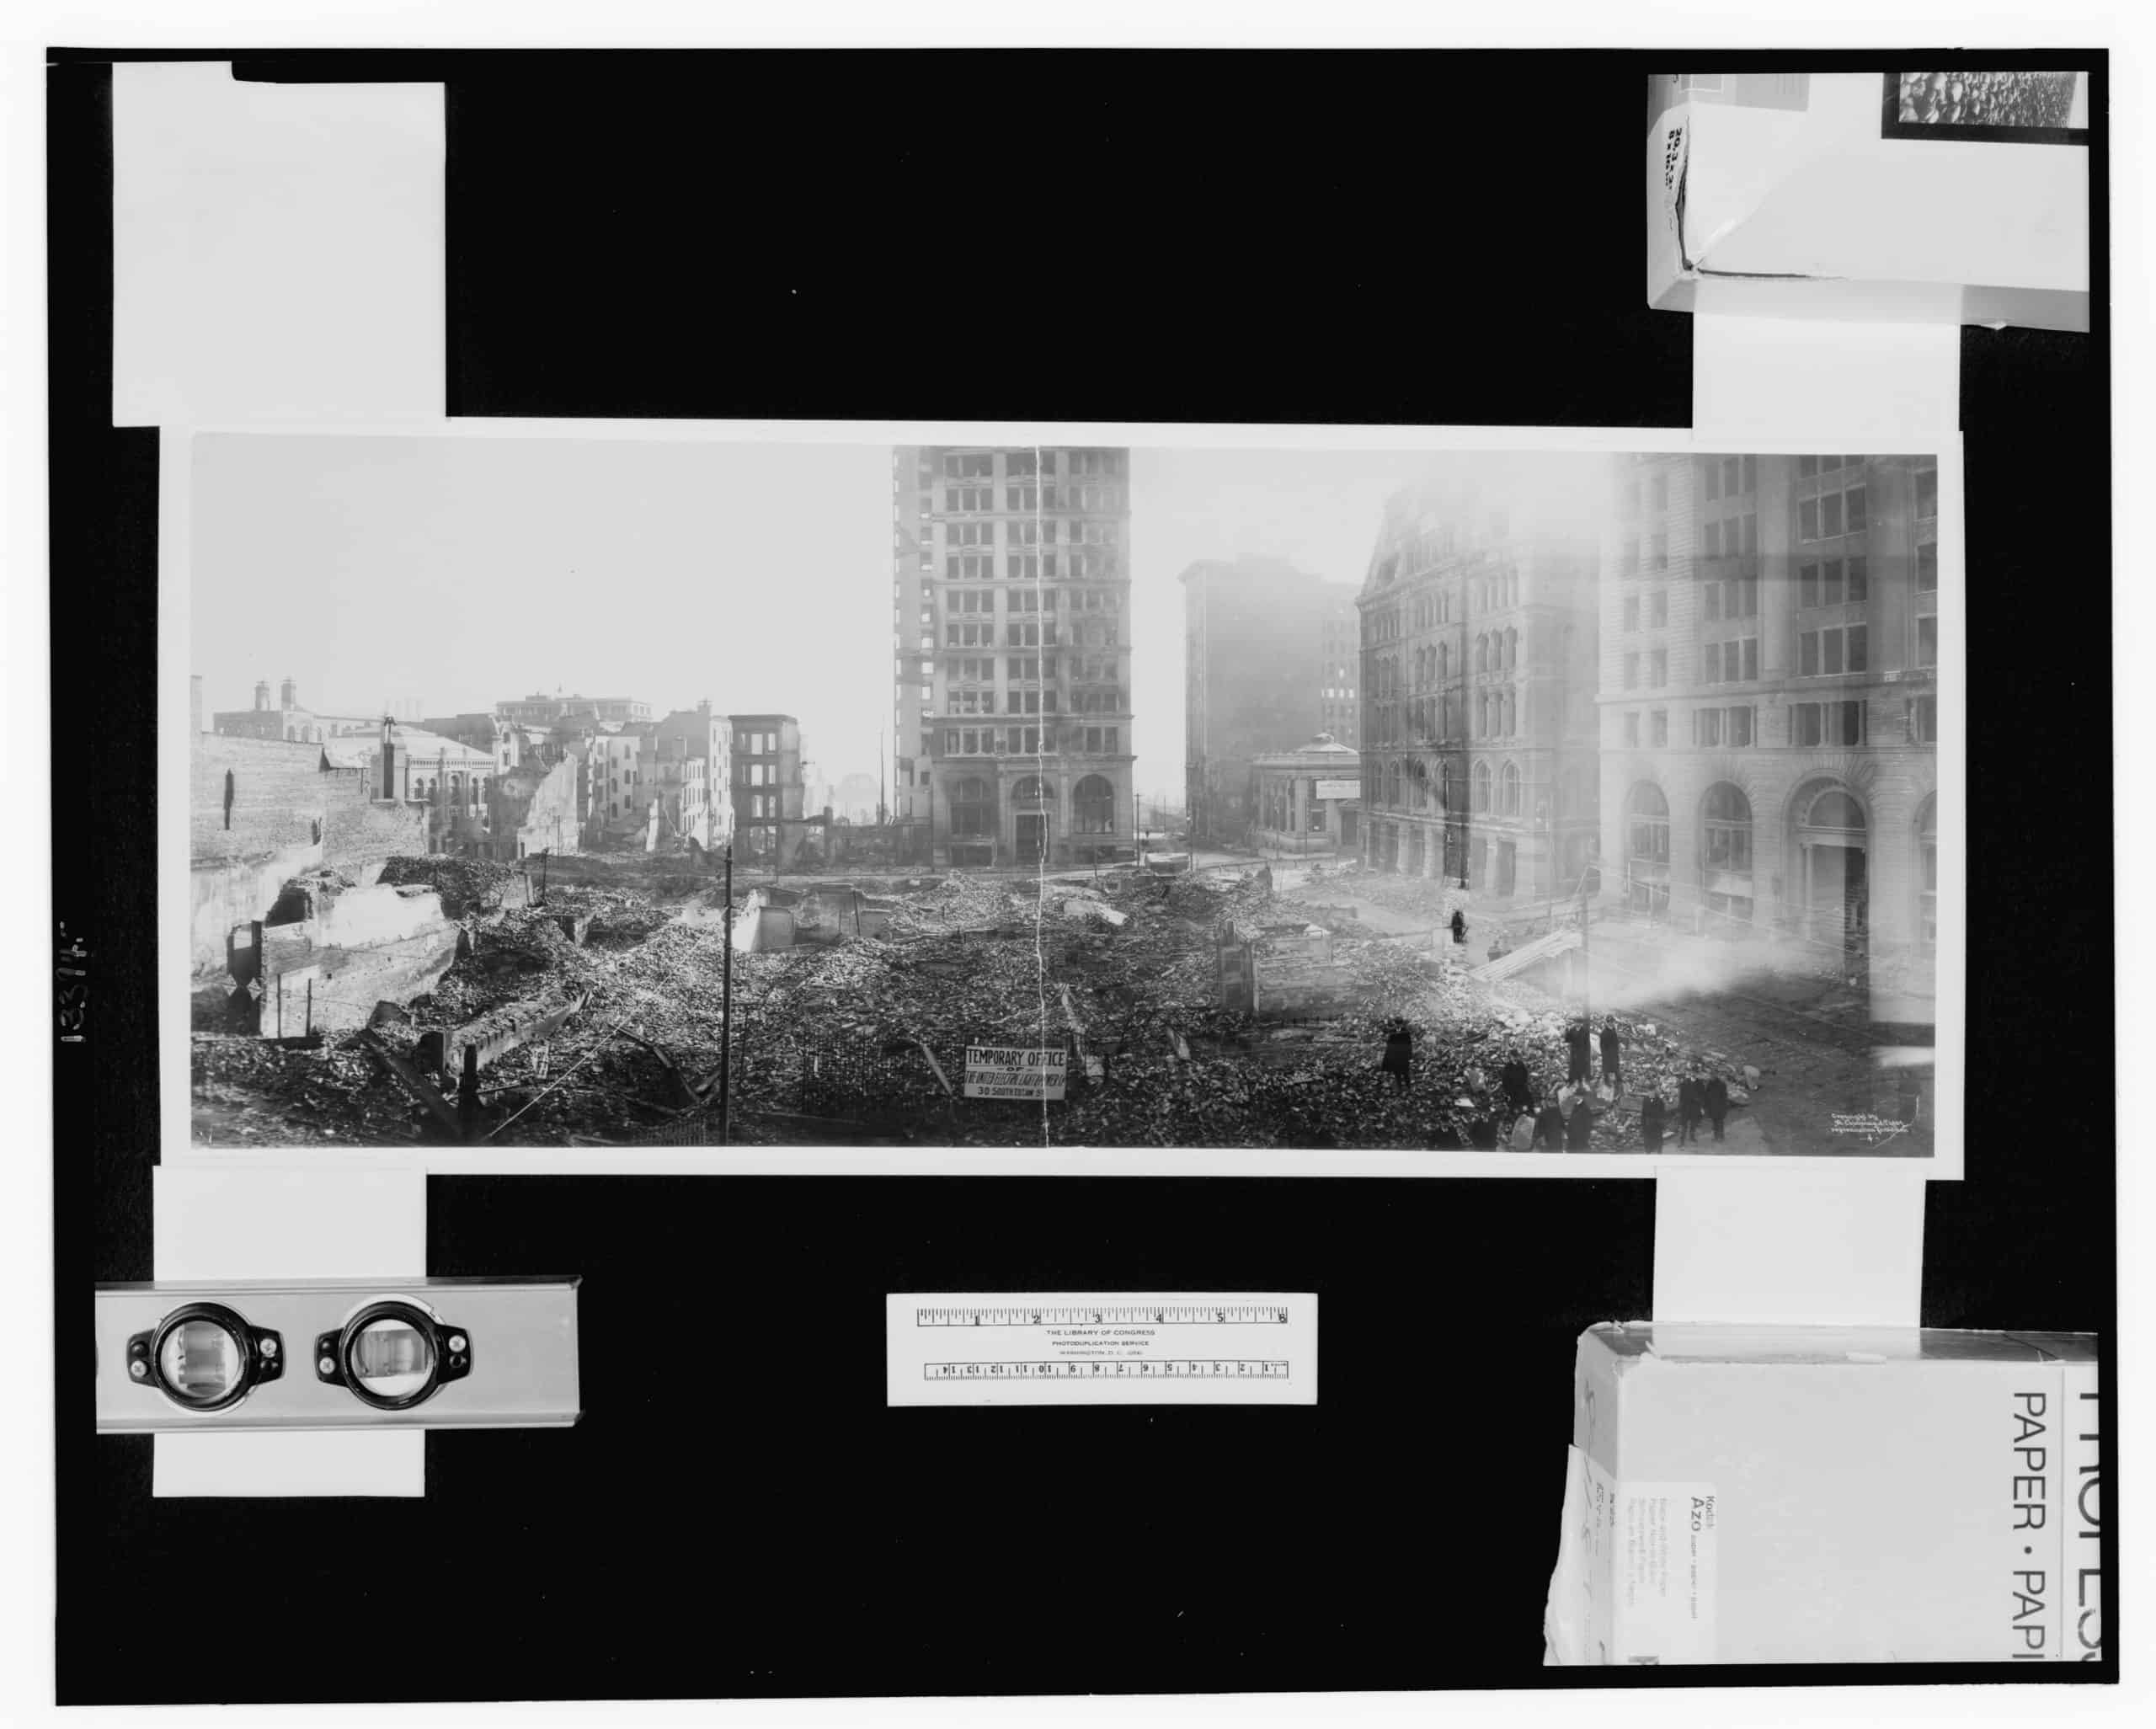 Panoramic photograph of Baltimore fire, E. Chickering & Co., ca 1904